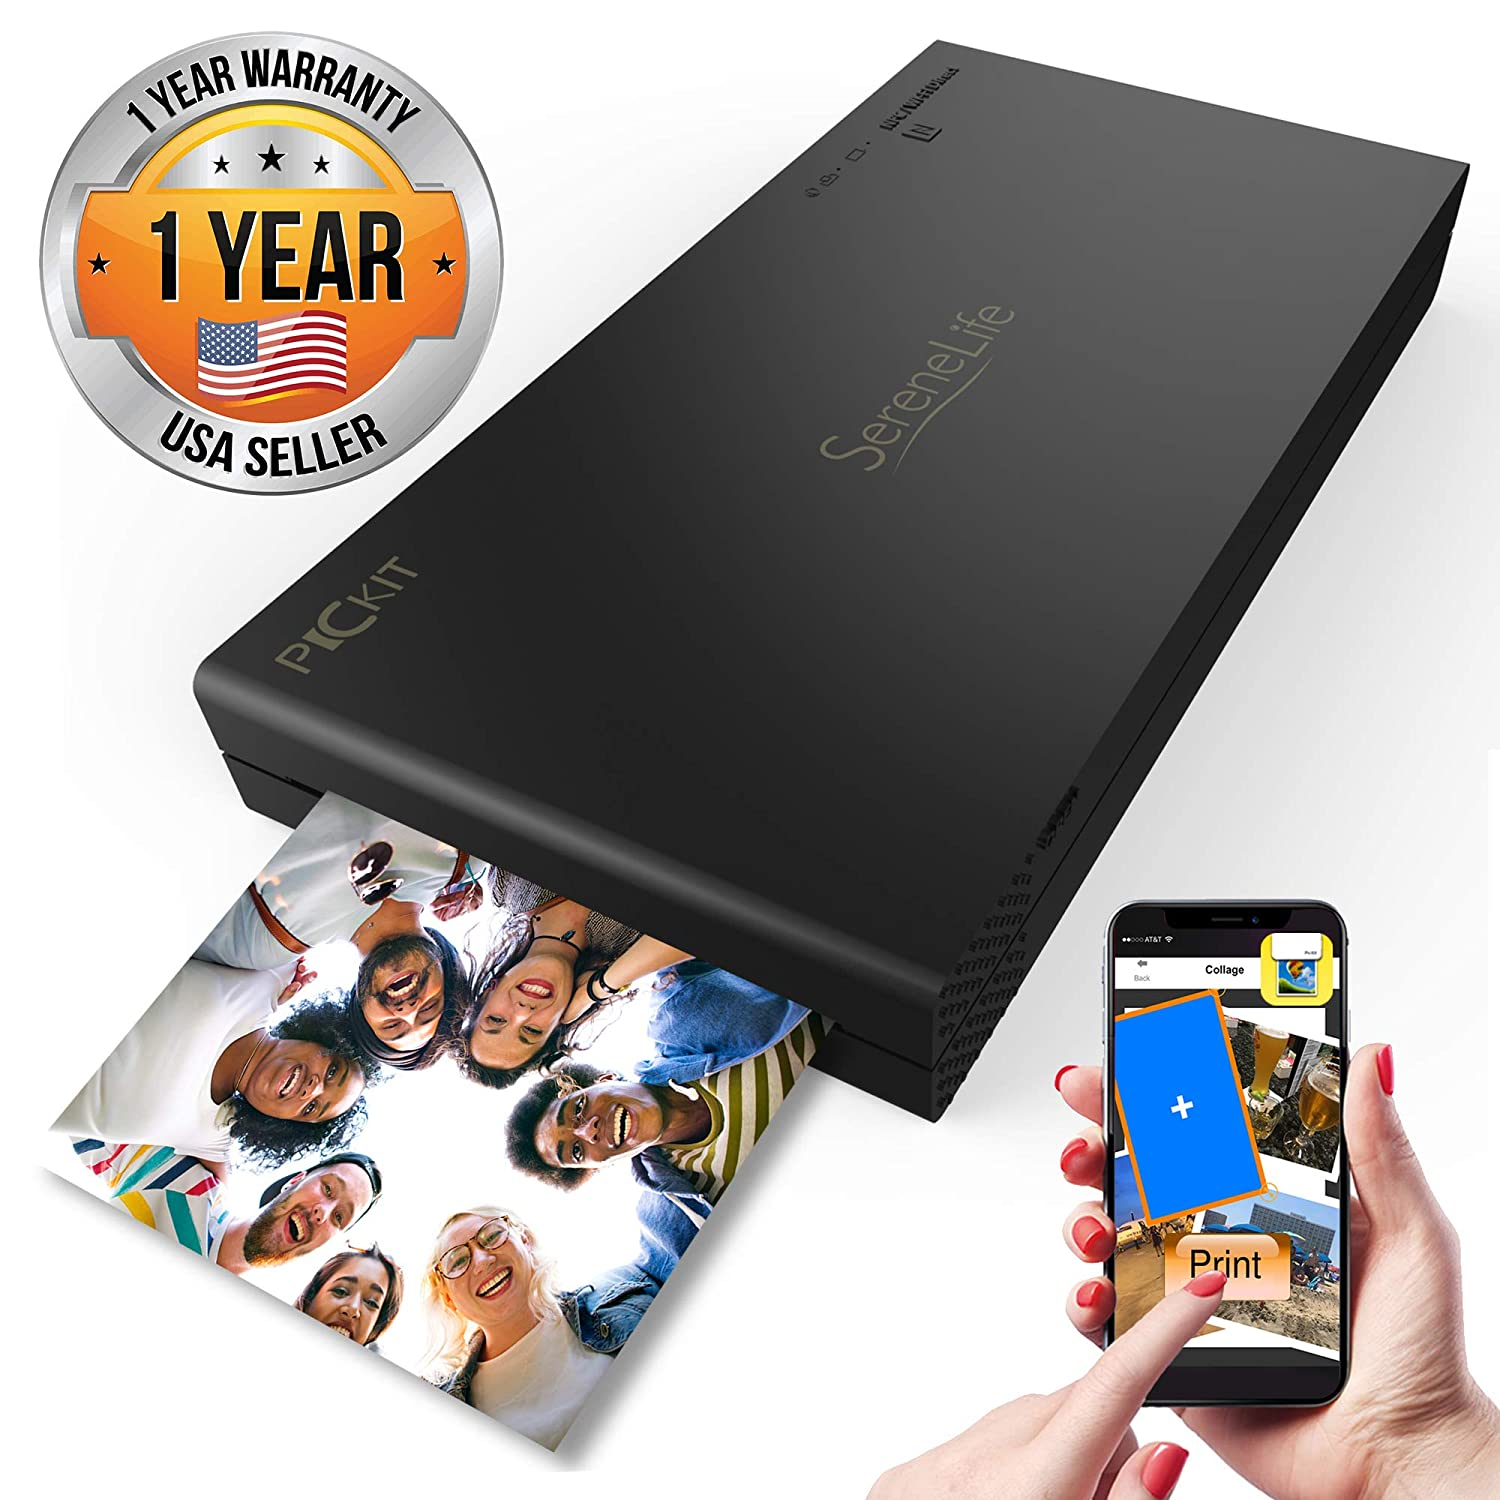 Amazon.com: serenelife portátil Instant Mobile Photo Printer ...